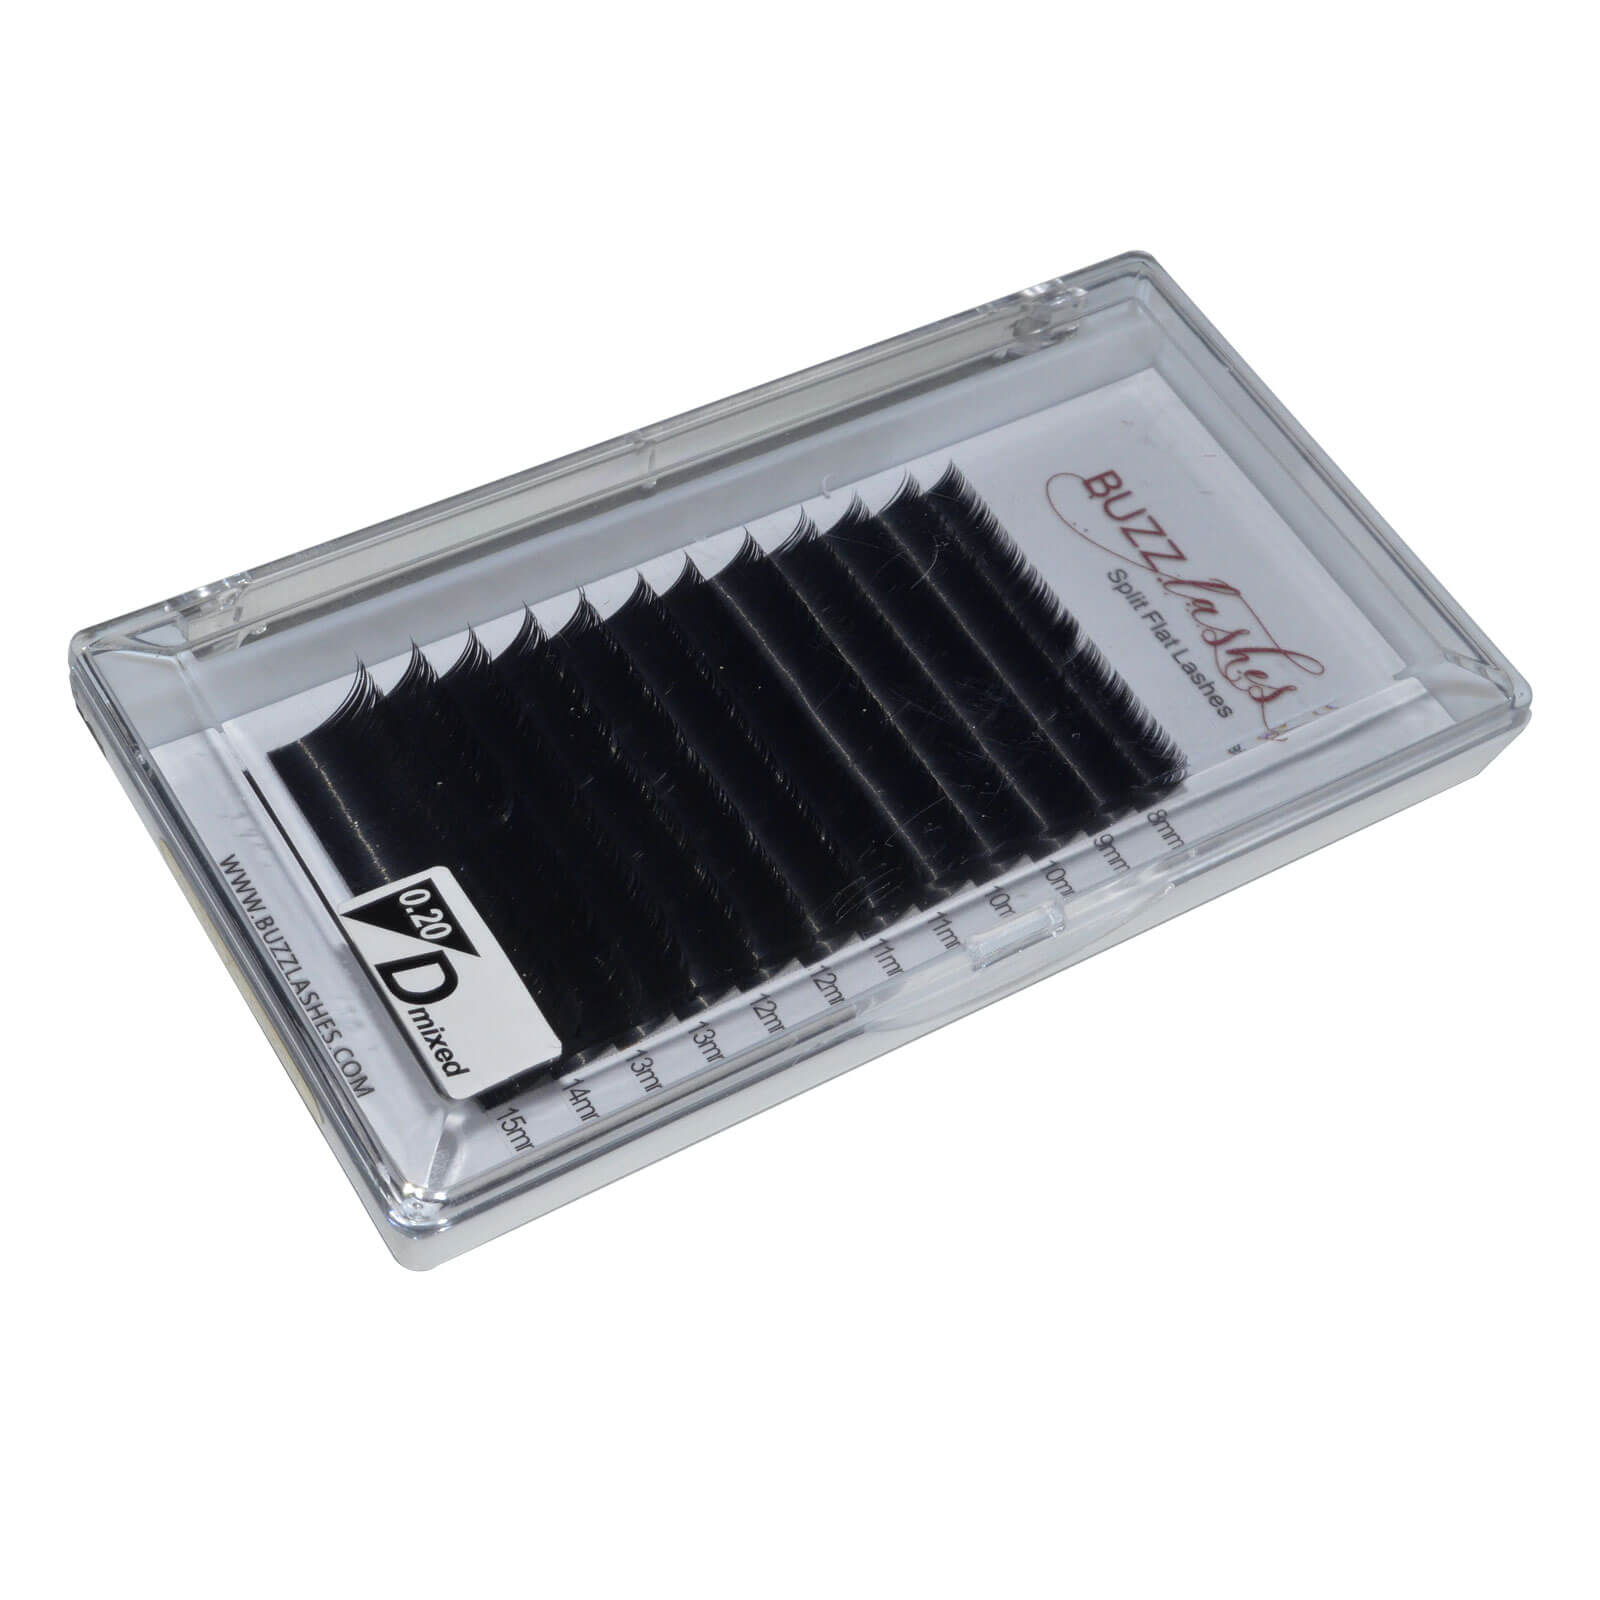 Cílios Buzz Lashes Flat Split Bandeja Mix 8-15mm